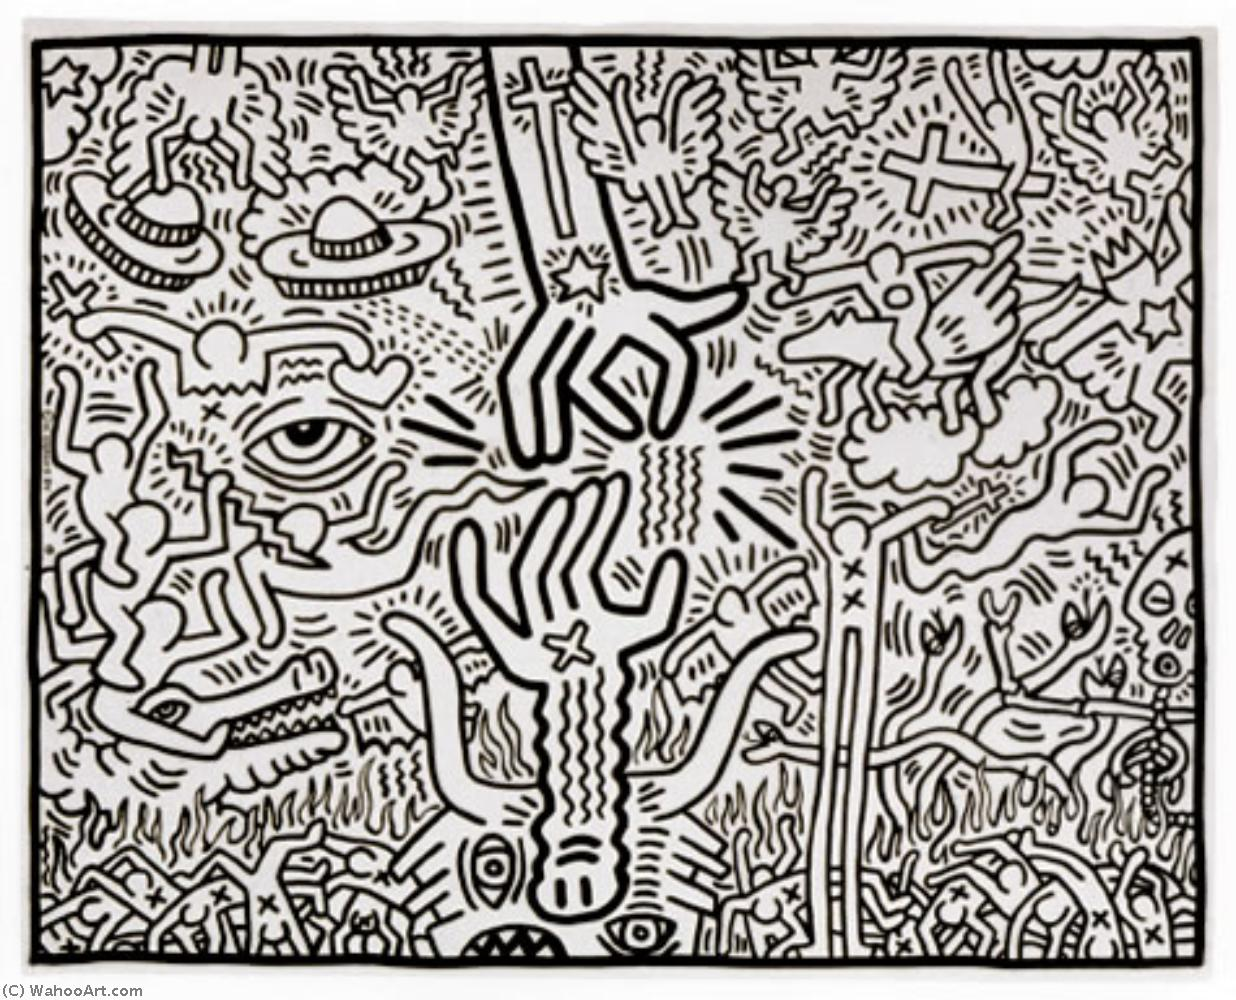 famous painting The marriage of heaven and hell of Keith Haring